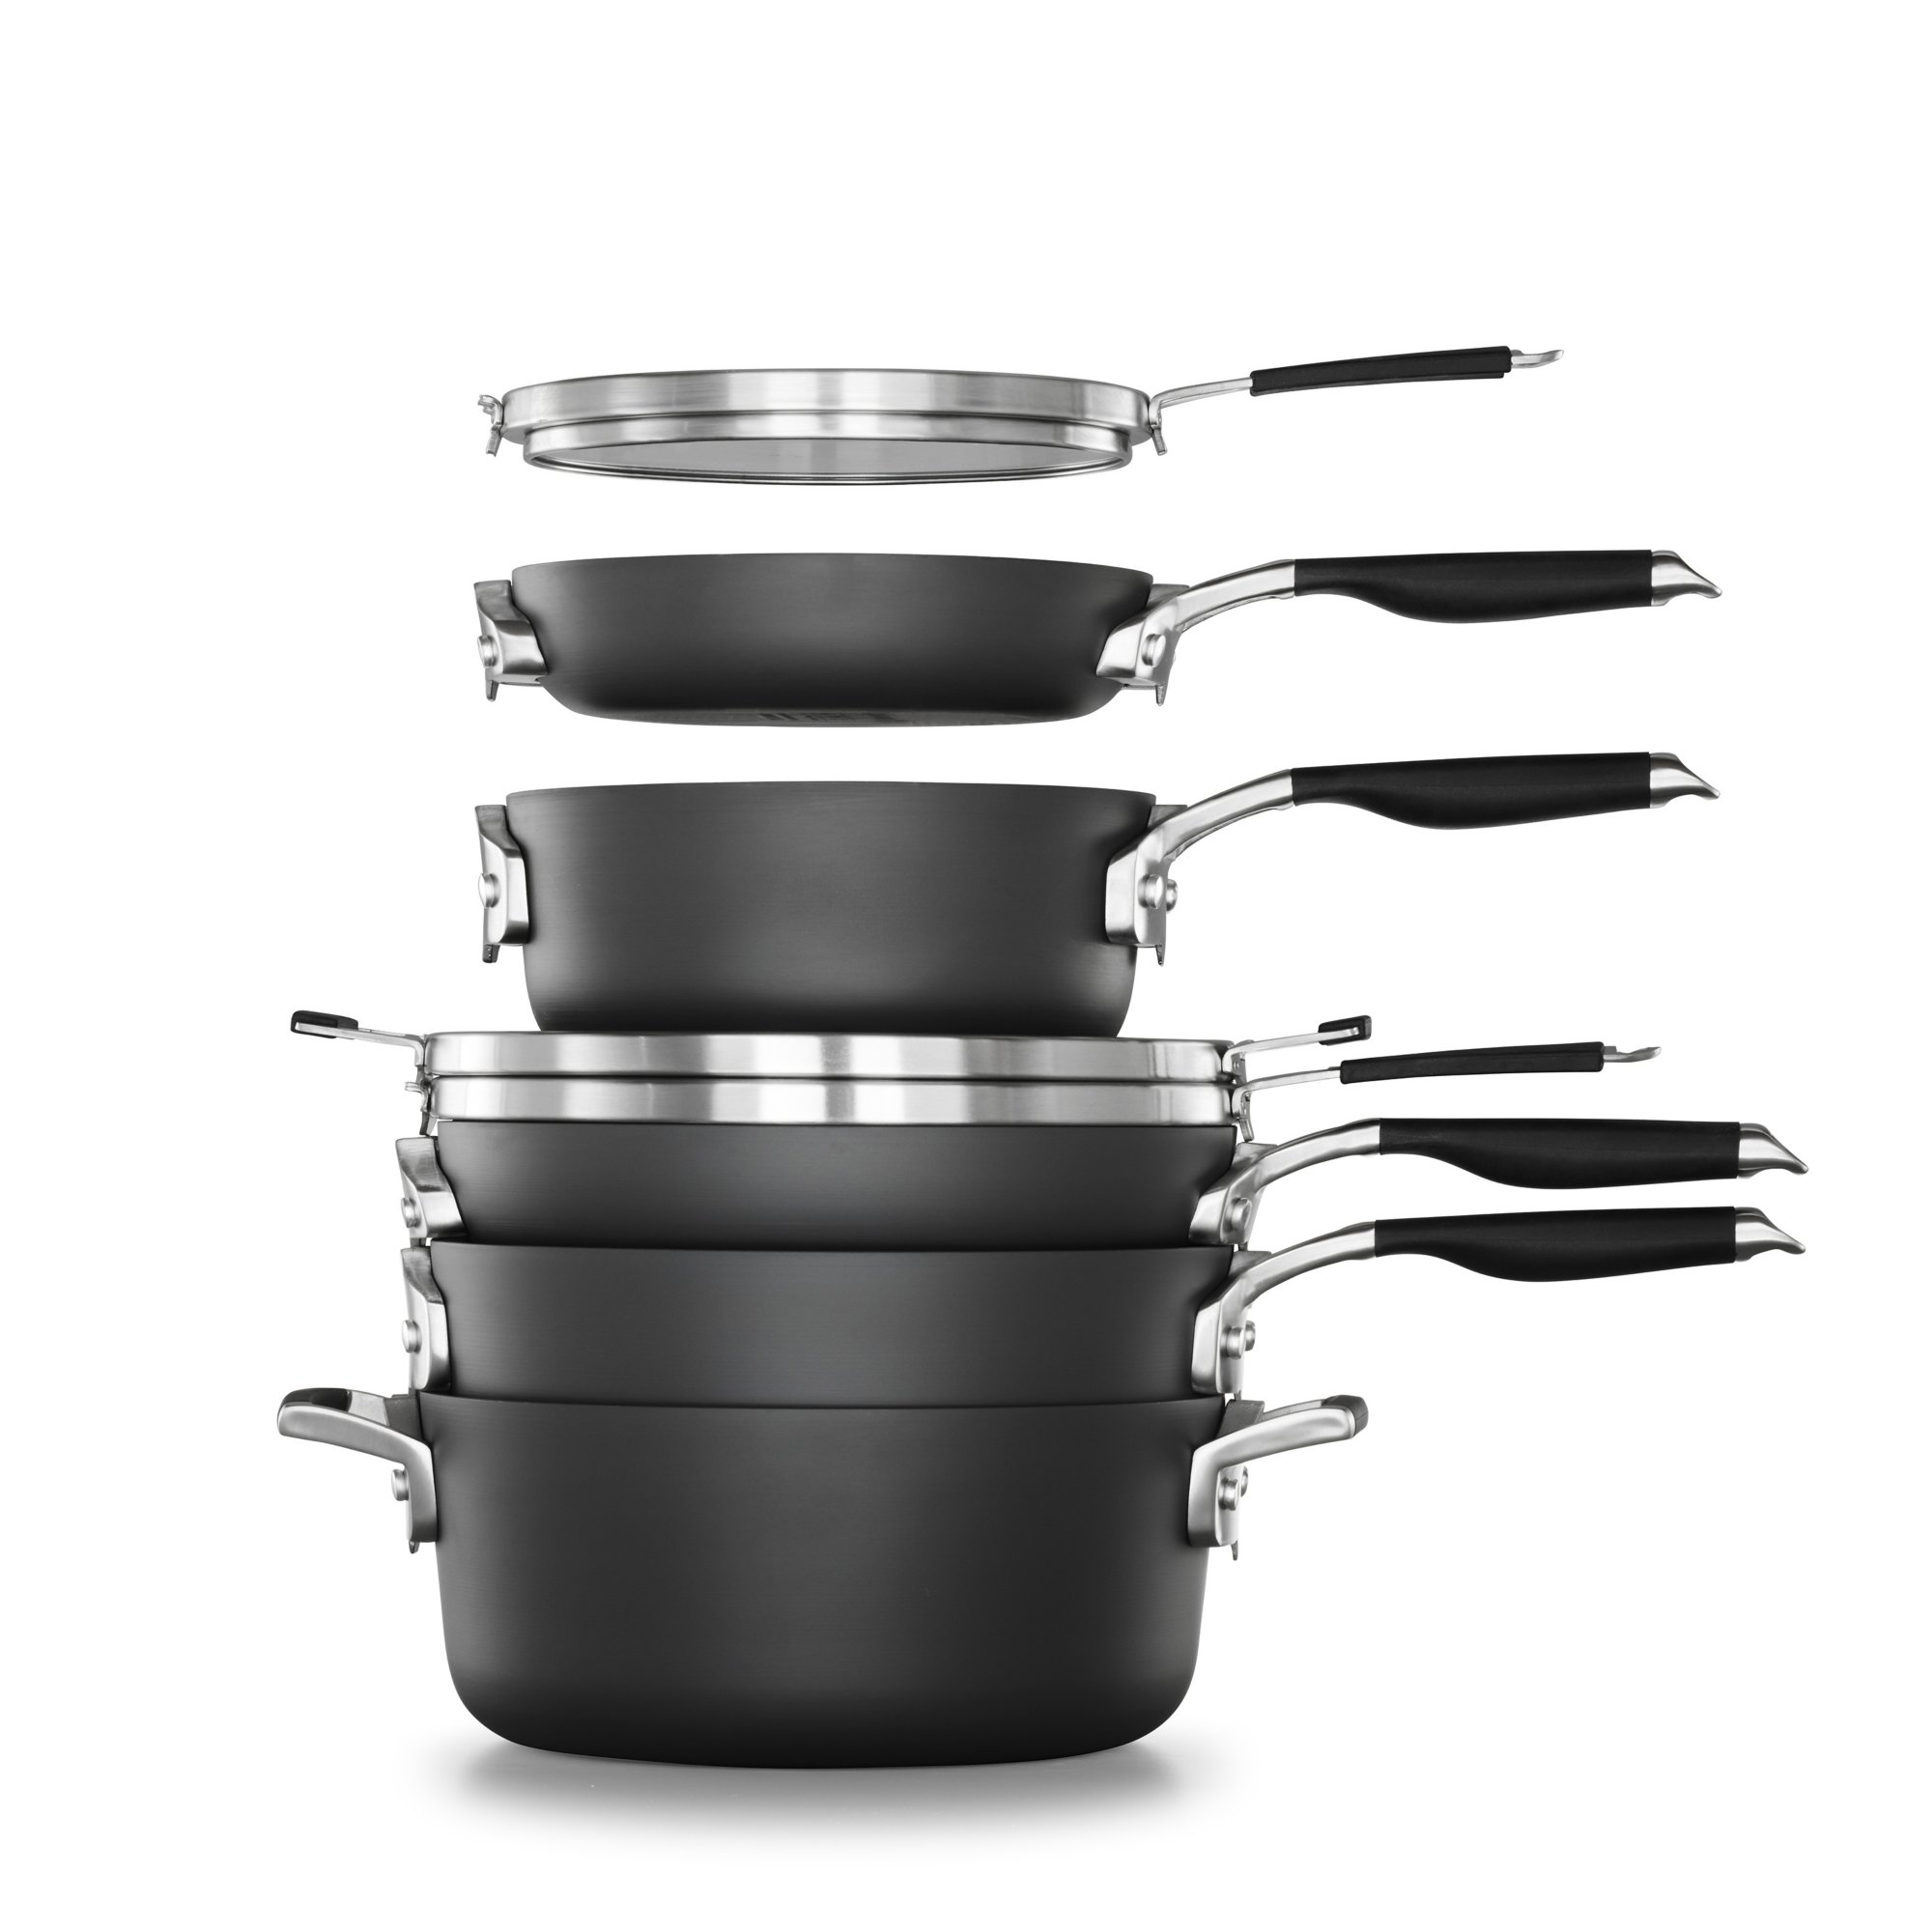 Select by Calphalon Space Saving Hard-Anodized Nonstick 11-Piece Cookware Set